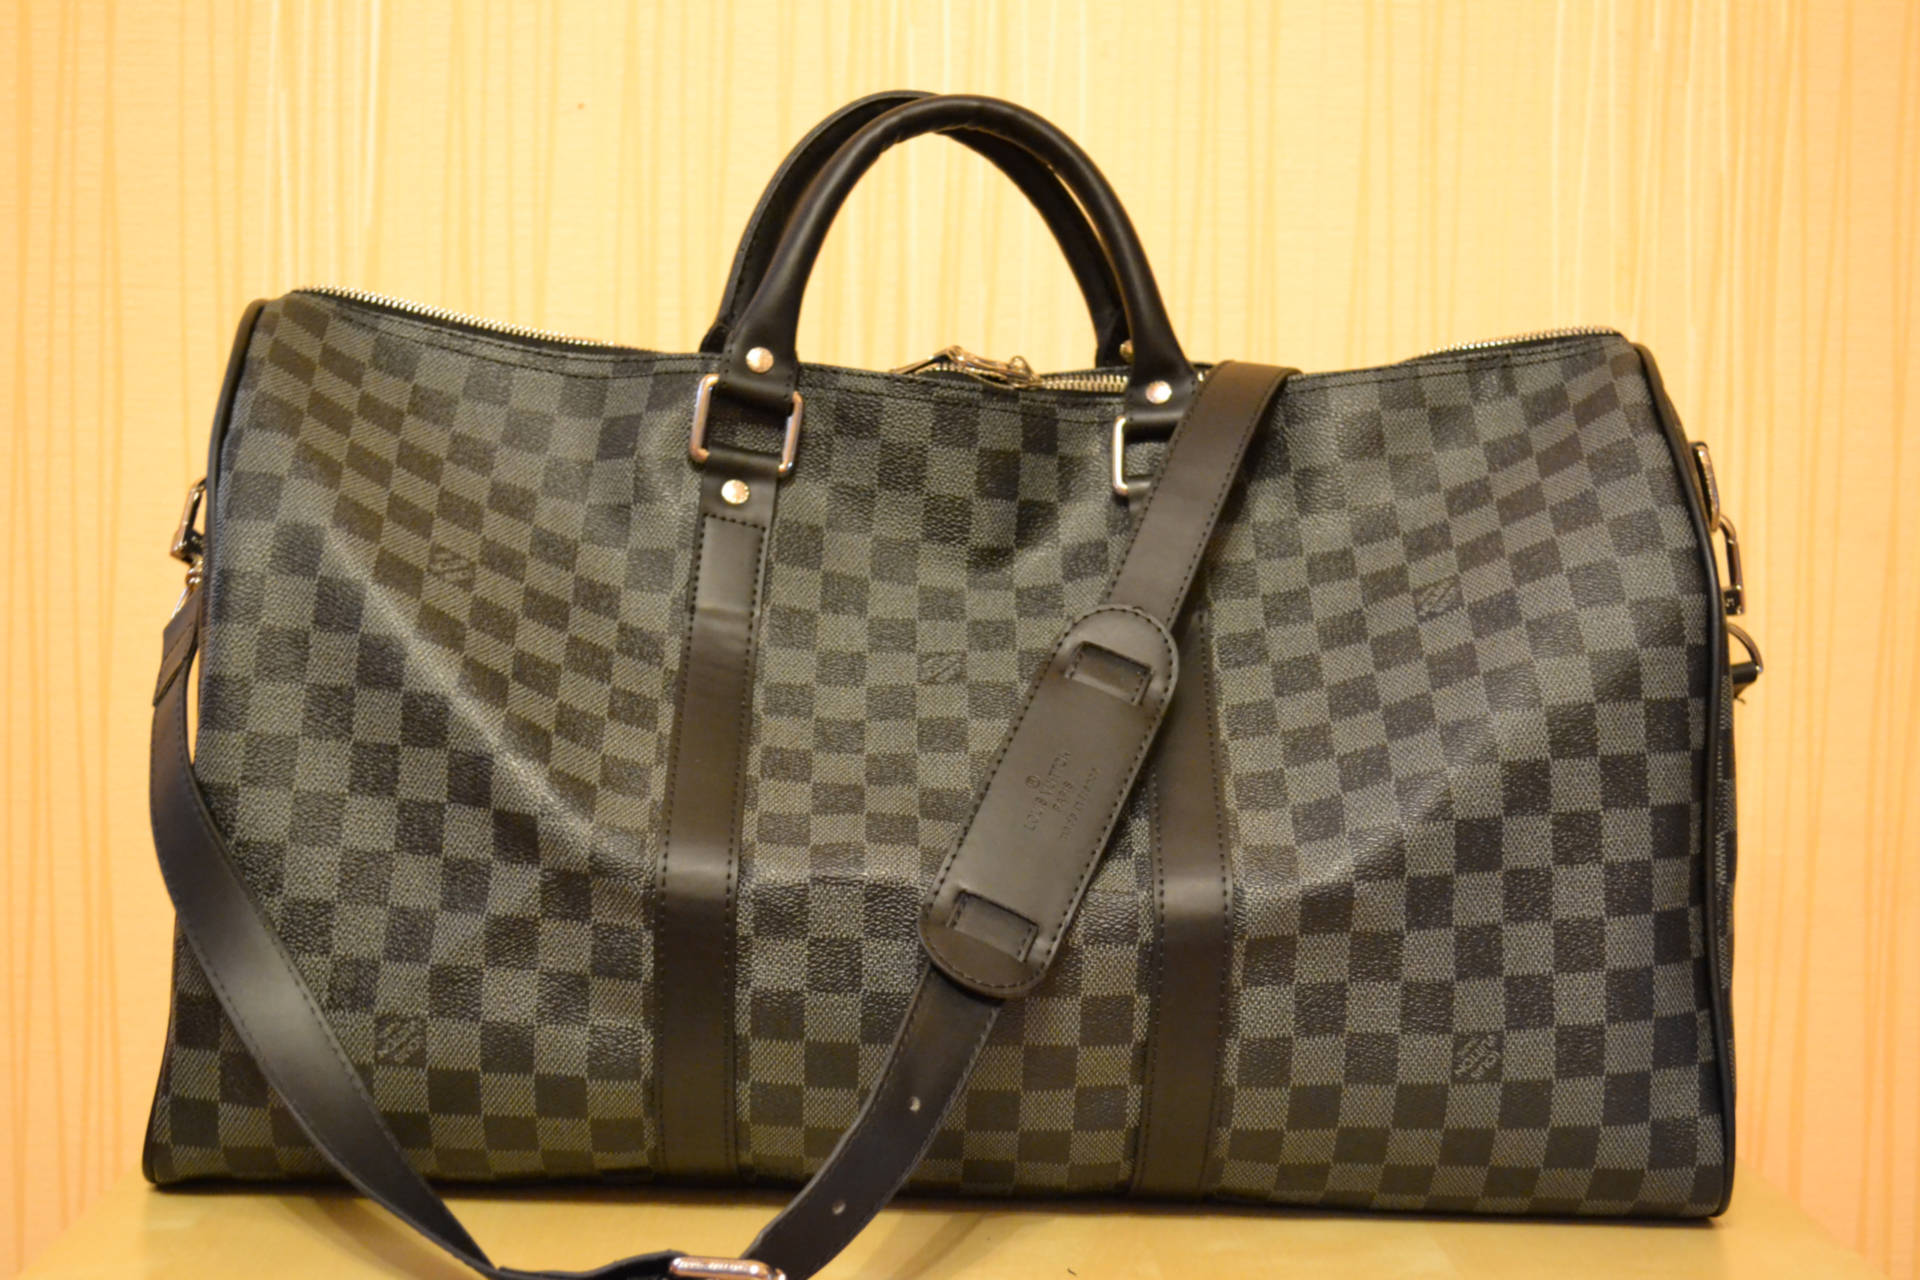 Доржные сумки louis vuitton